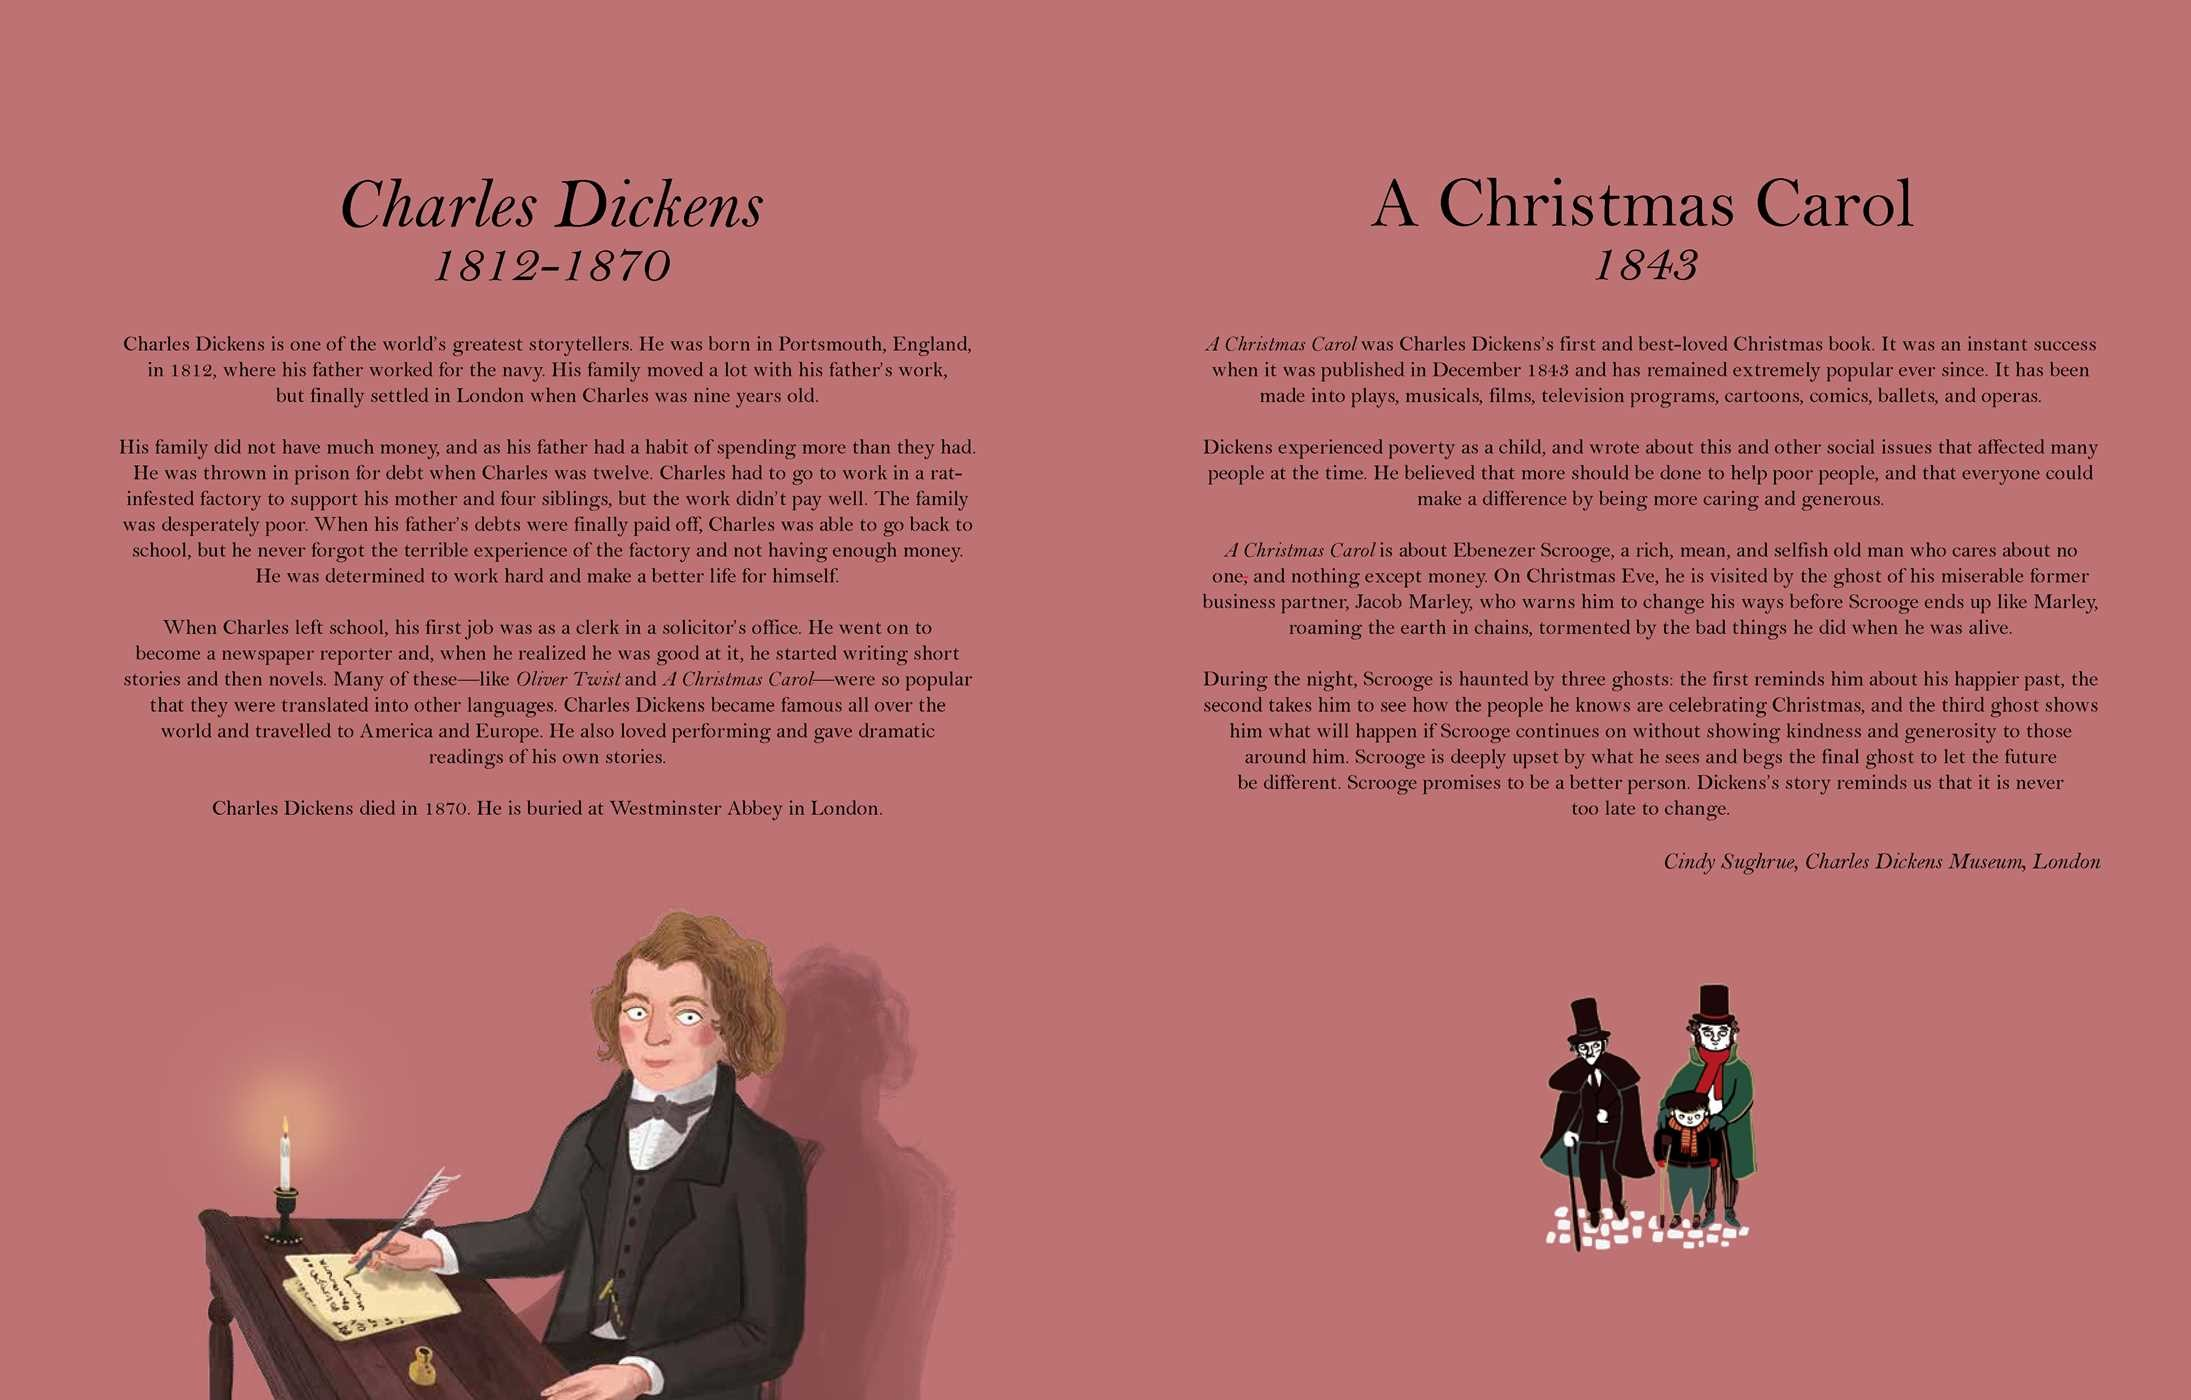 a christmas carol 9781499806243 hr a christmas carol 9781499806243in01 - When Was A Christmas Carol Published